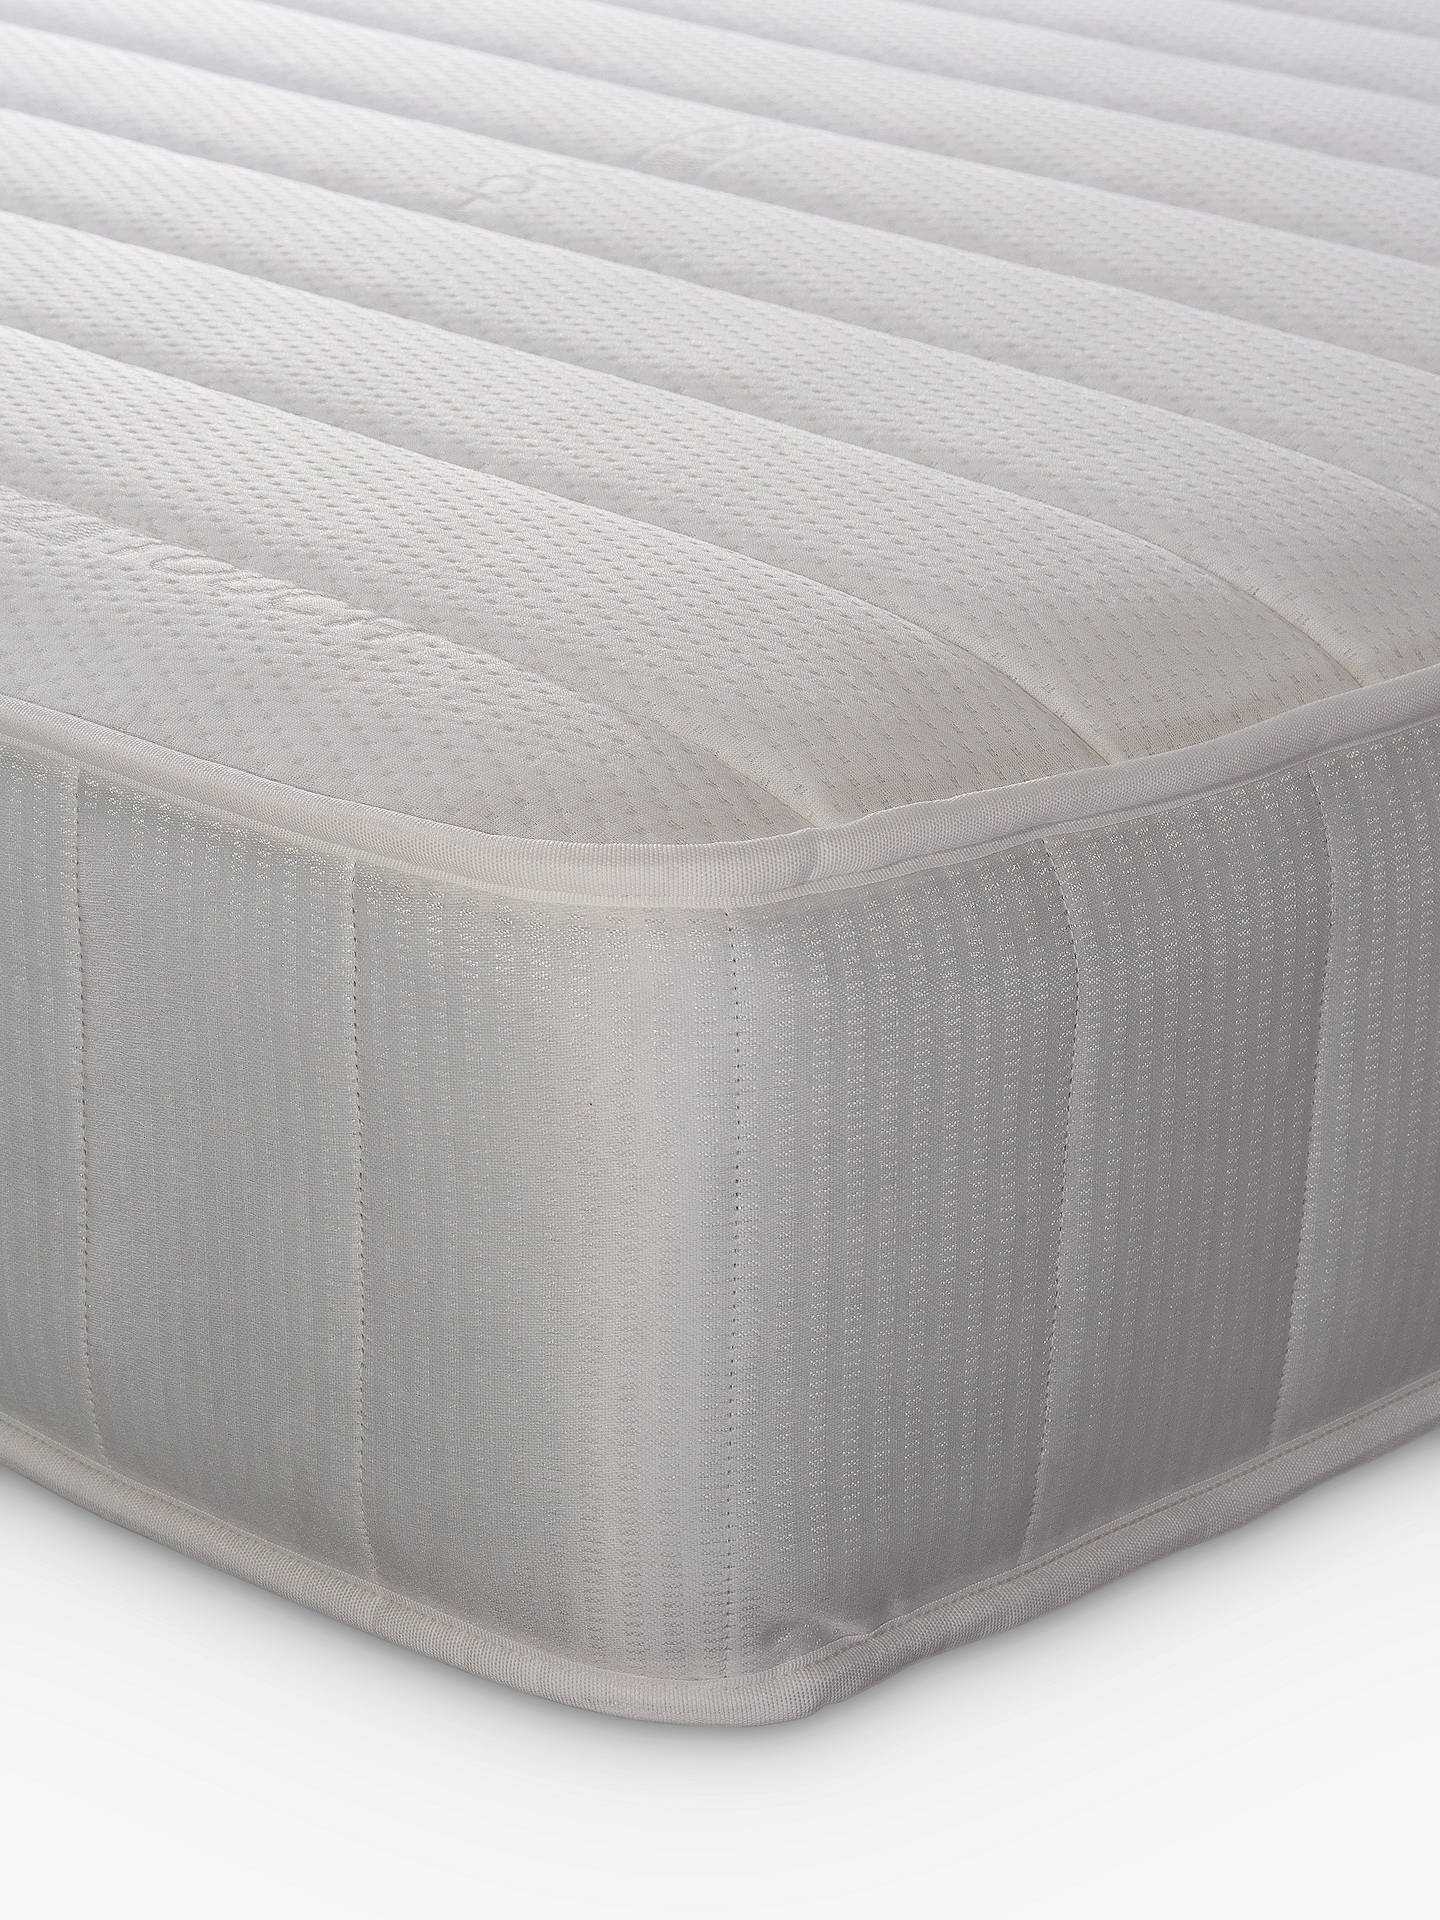 Buy John Lewis & Partners Essentials Collection Pocket 1000 Luxury, Medium Tension, Pocket Spring Turnable Mattress, Single Online at johnlewis.com